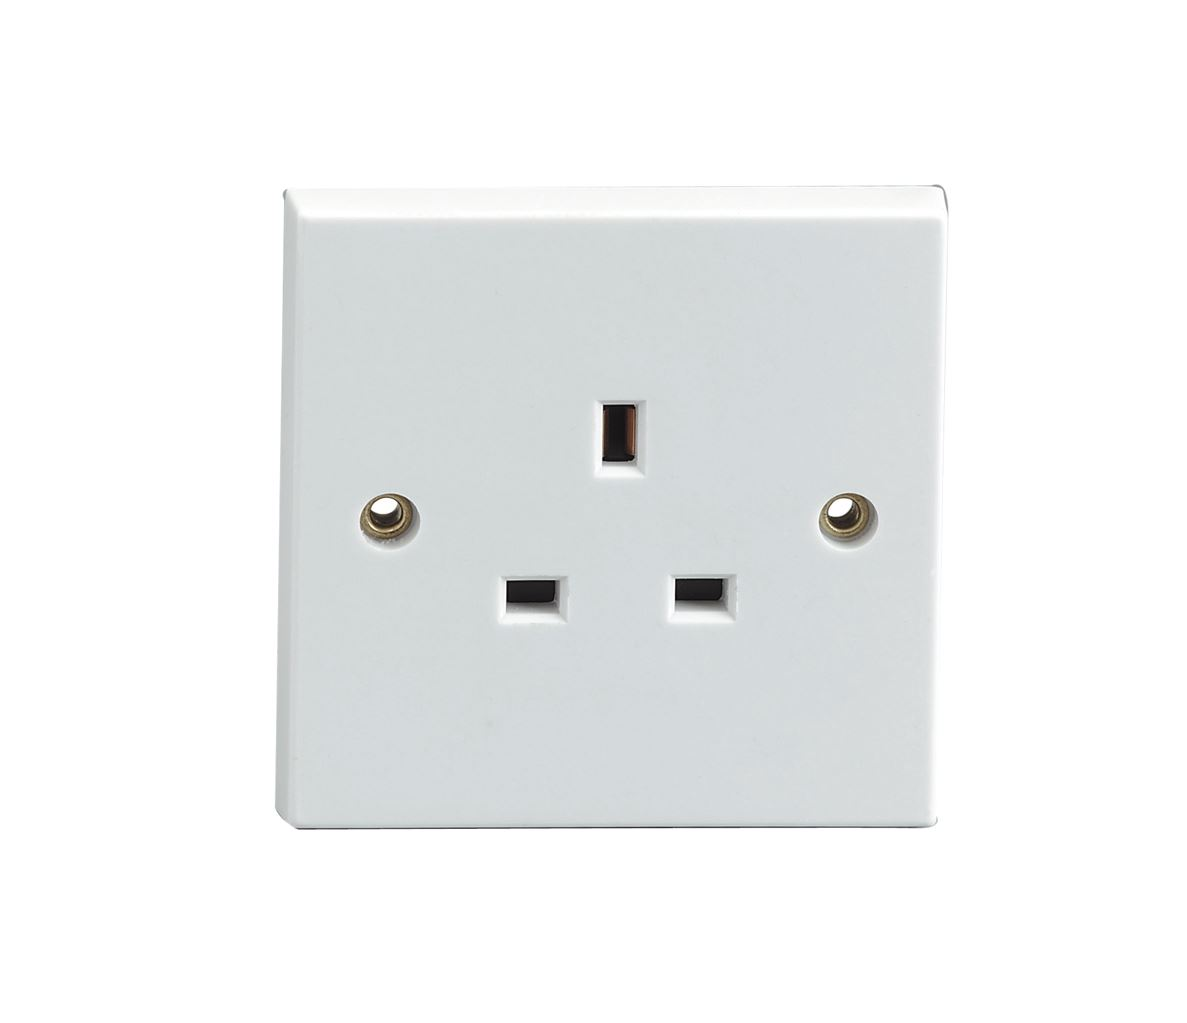 Wall Socket Plate Covers White Plug Electric Mains Wall Socket Blanking Plate Cover  Ebay